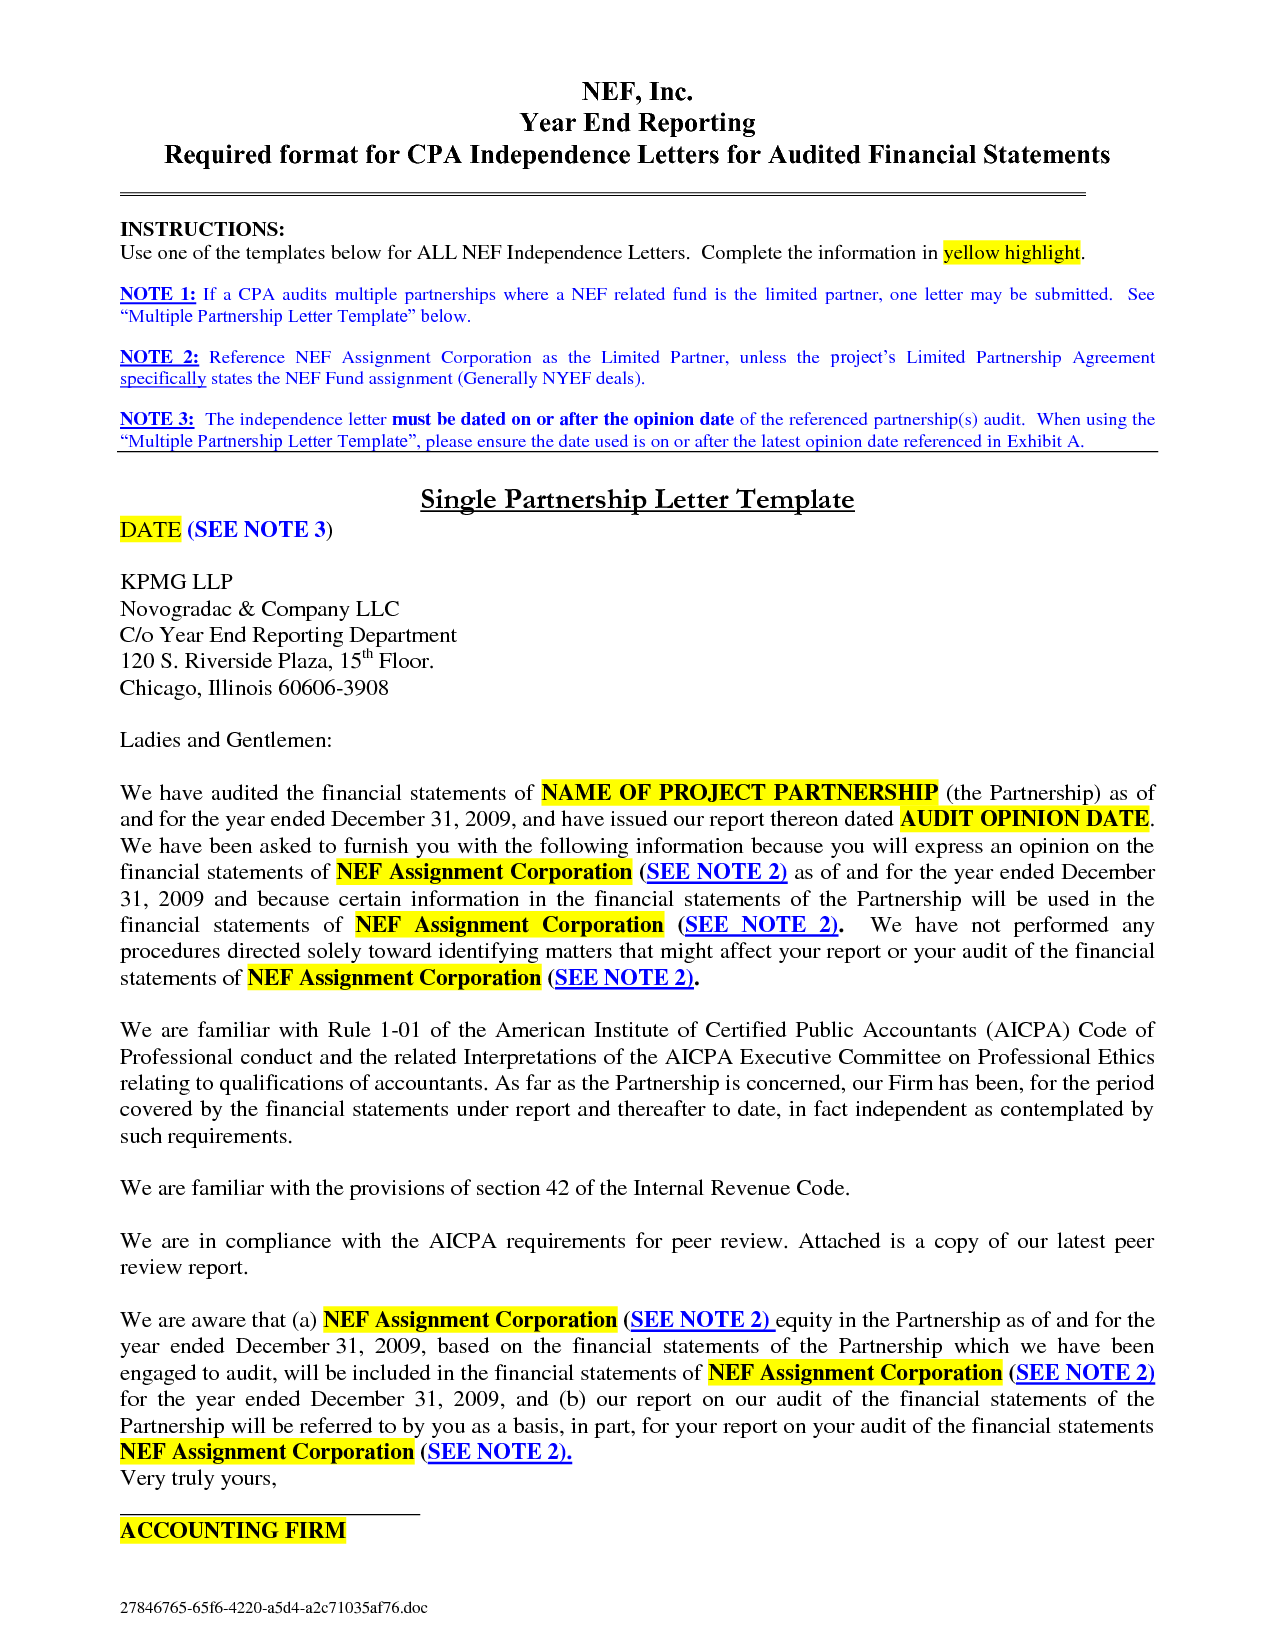 passport references letter example canada